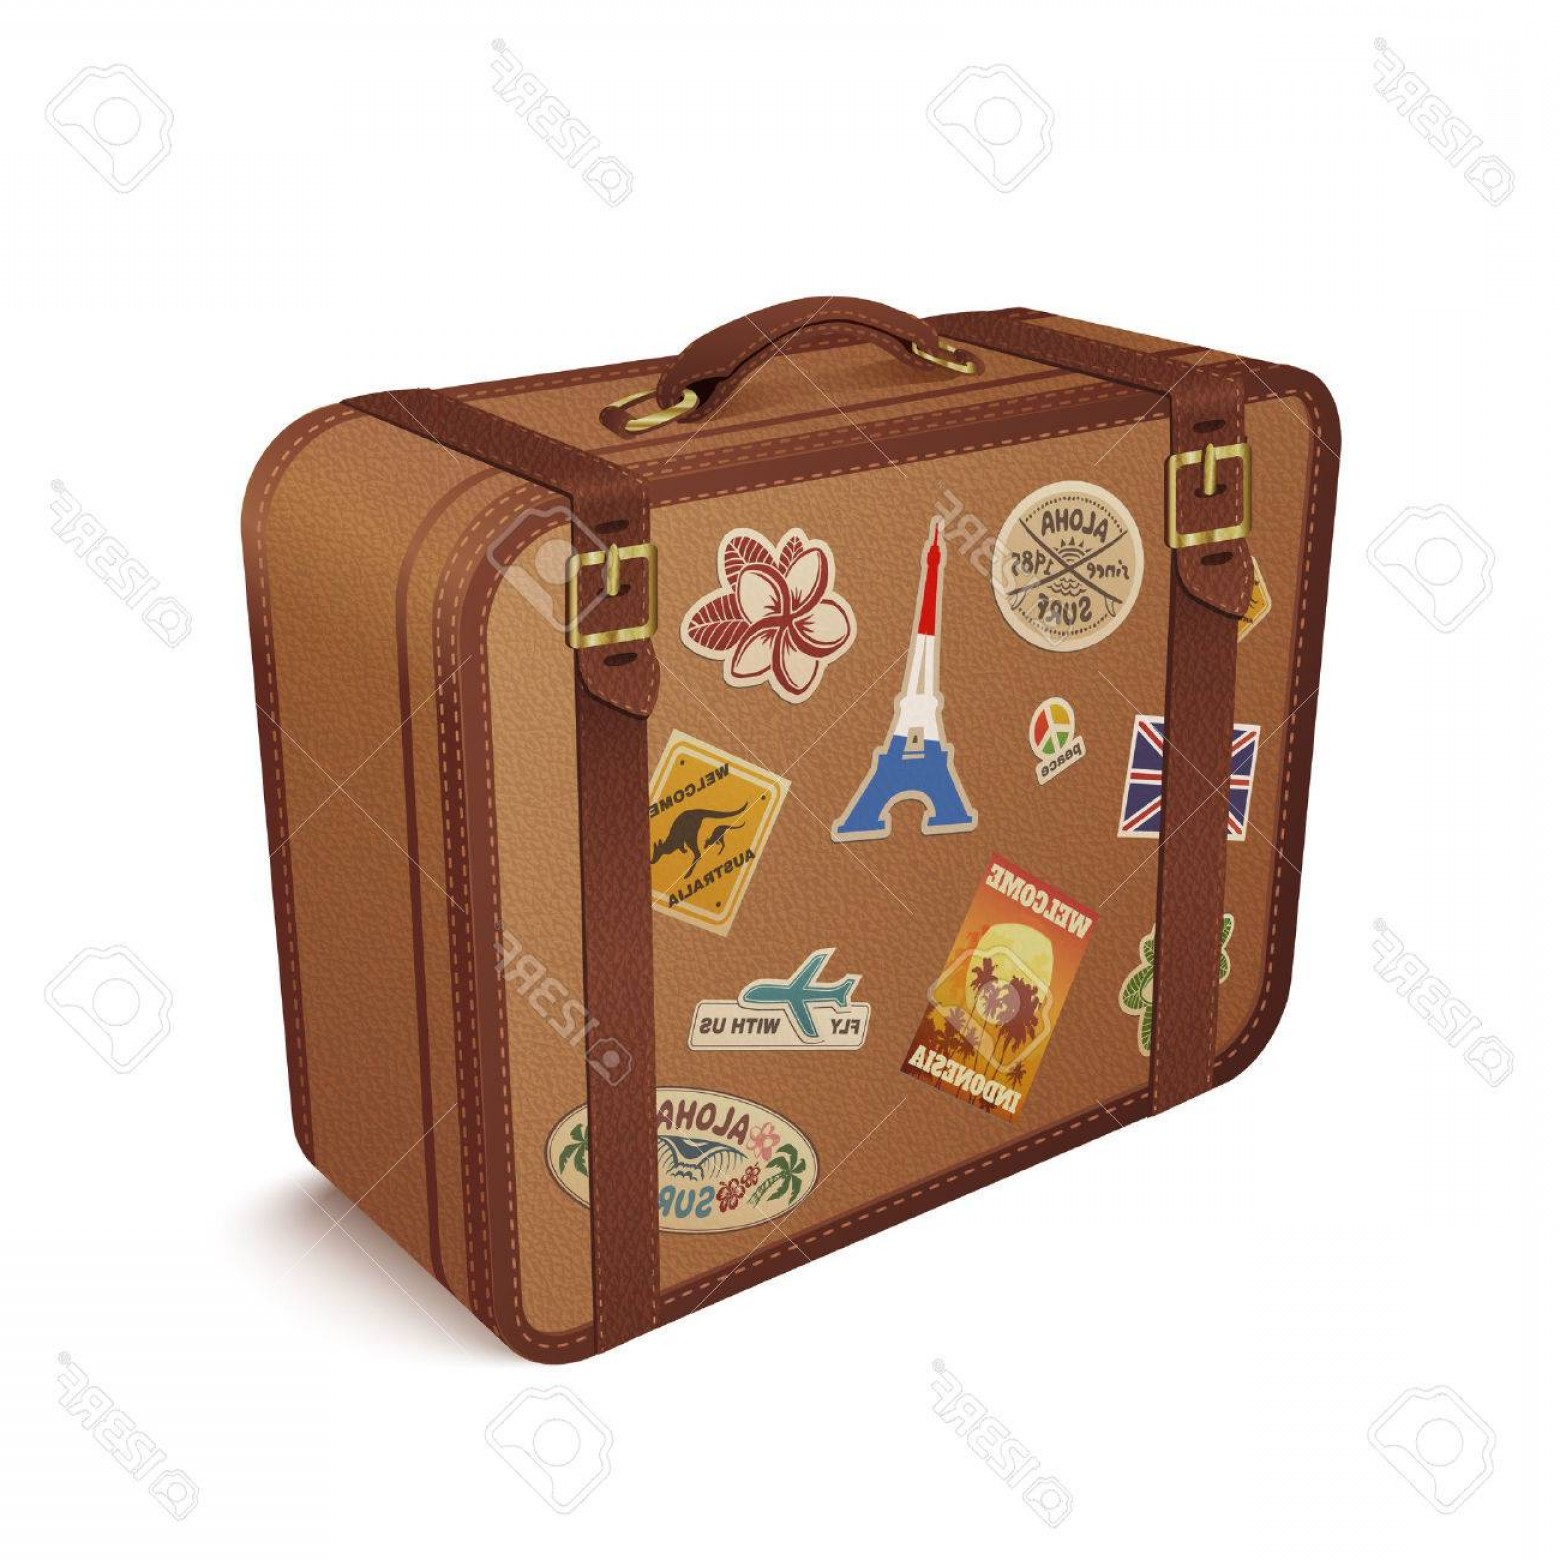 Vintage Luggage Vector: Photostock Vector Old Vintage Leather Suitcase With Travel Stickers Vector Illustration